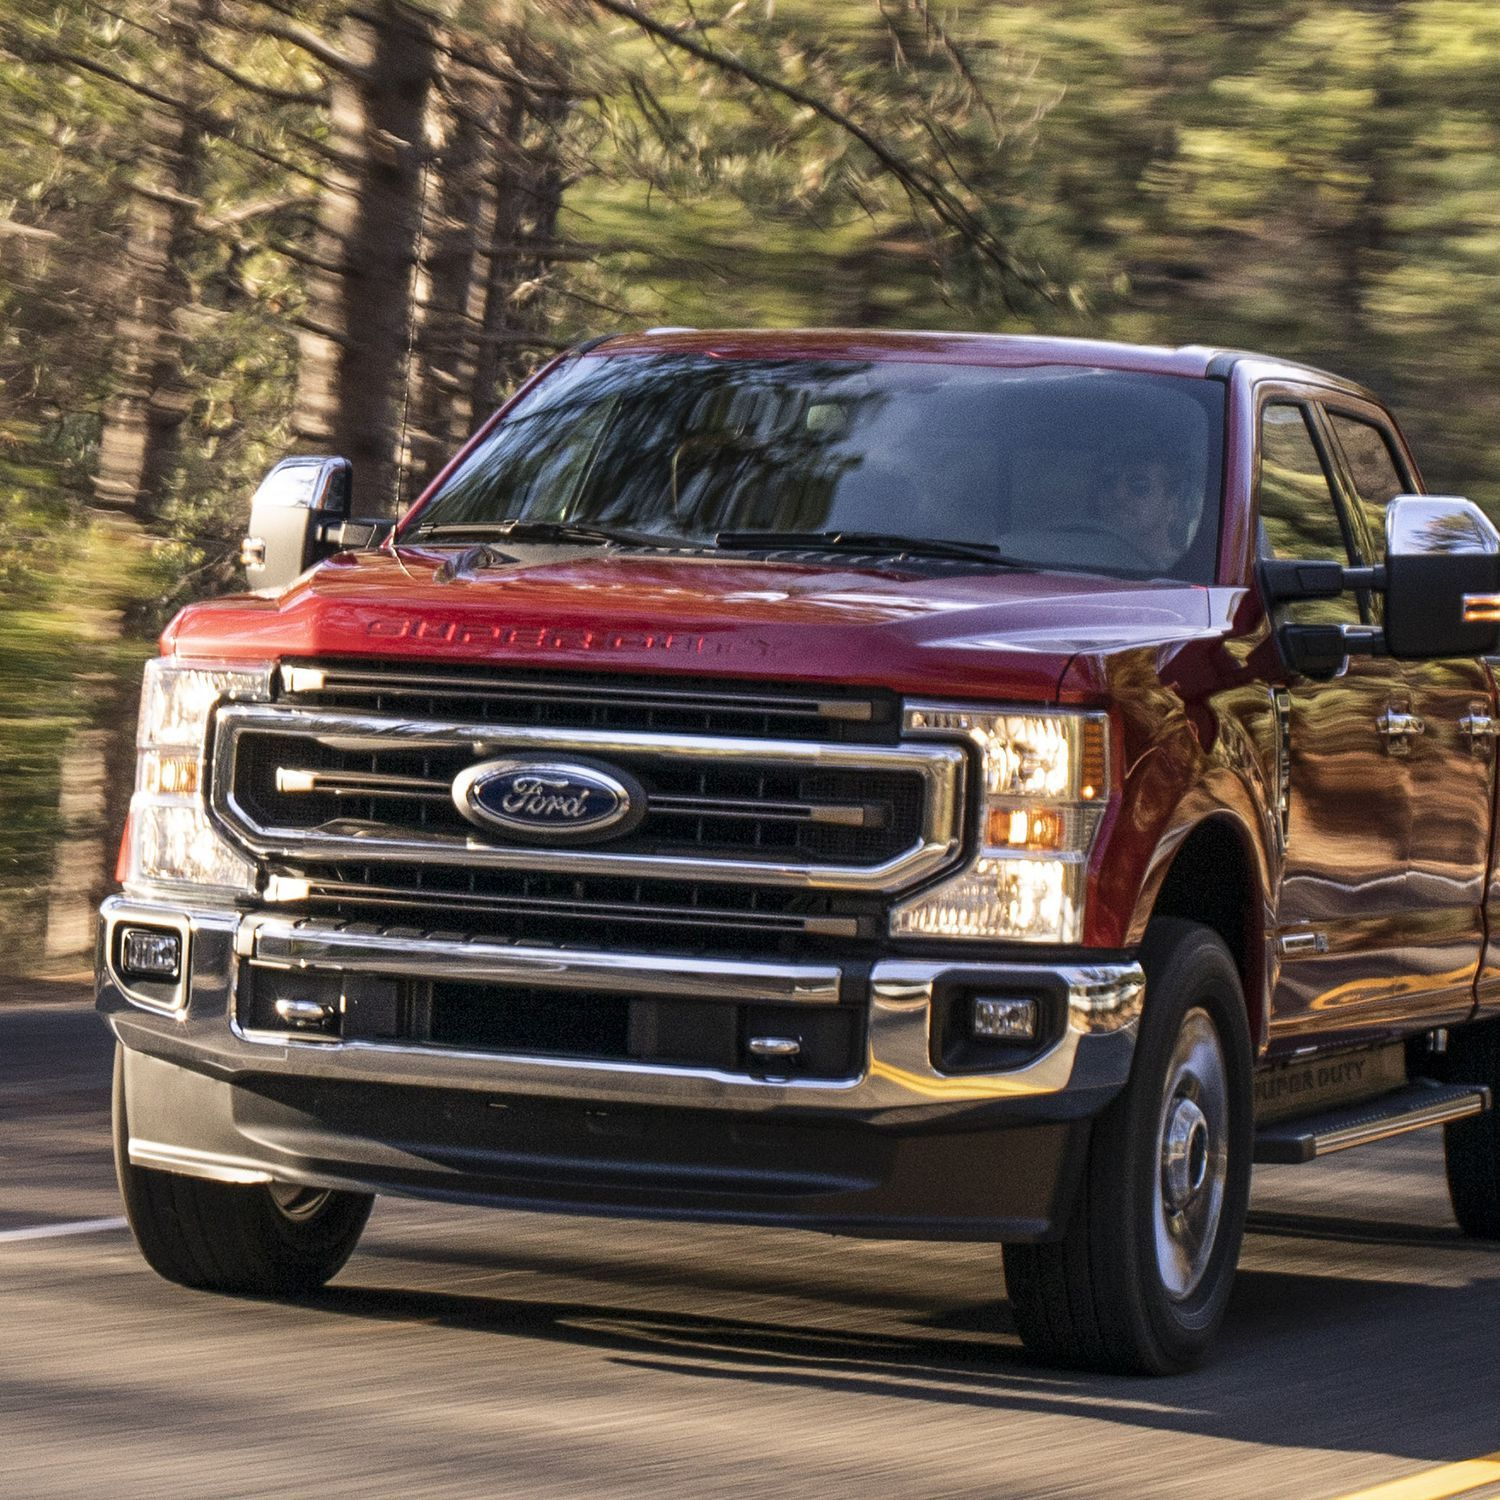 Why Ford Made A New 7 3 Liter Gas Pushrod V8 In 2019 Ford F Series Ford Super Duty Ford